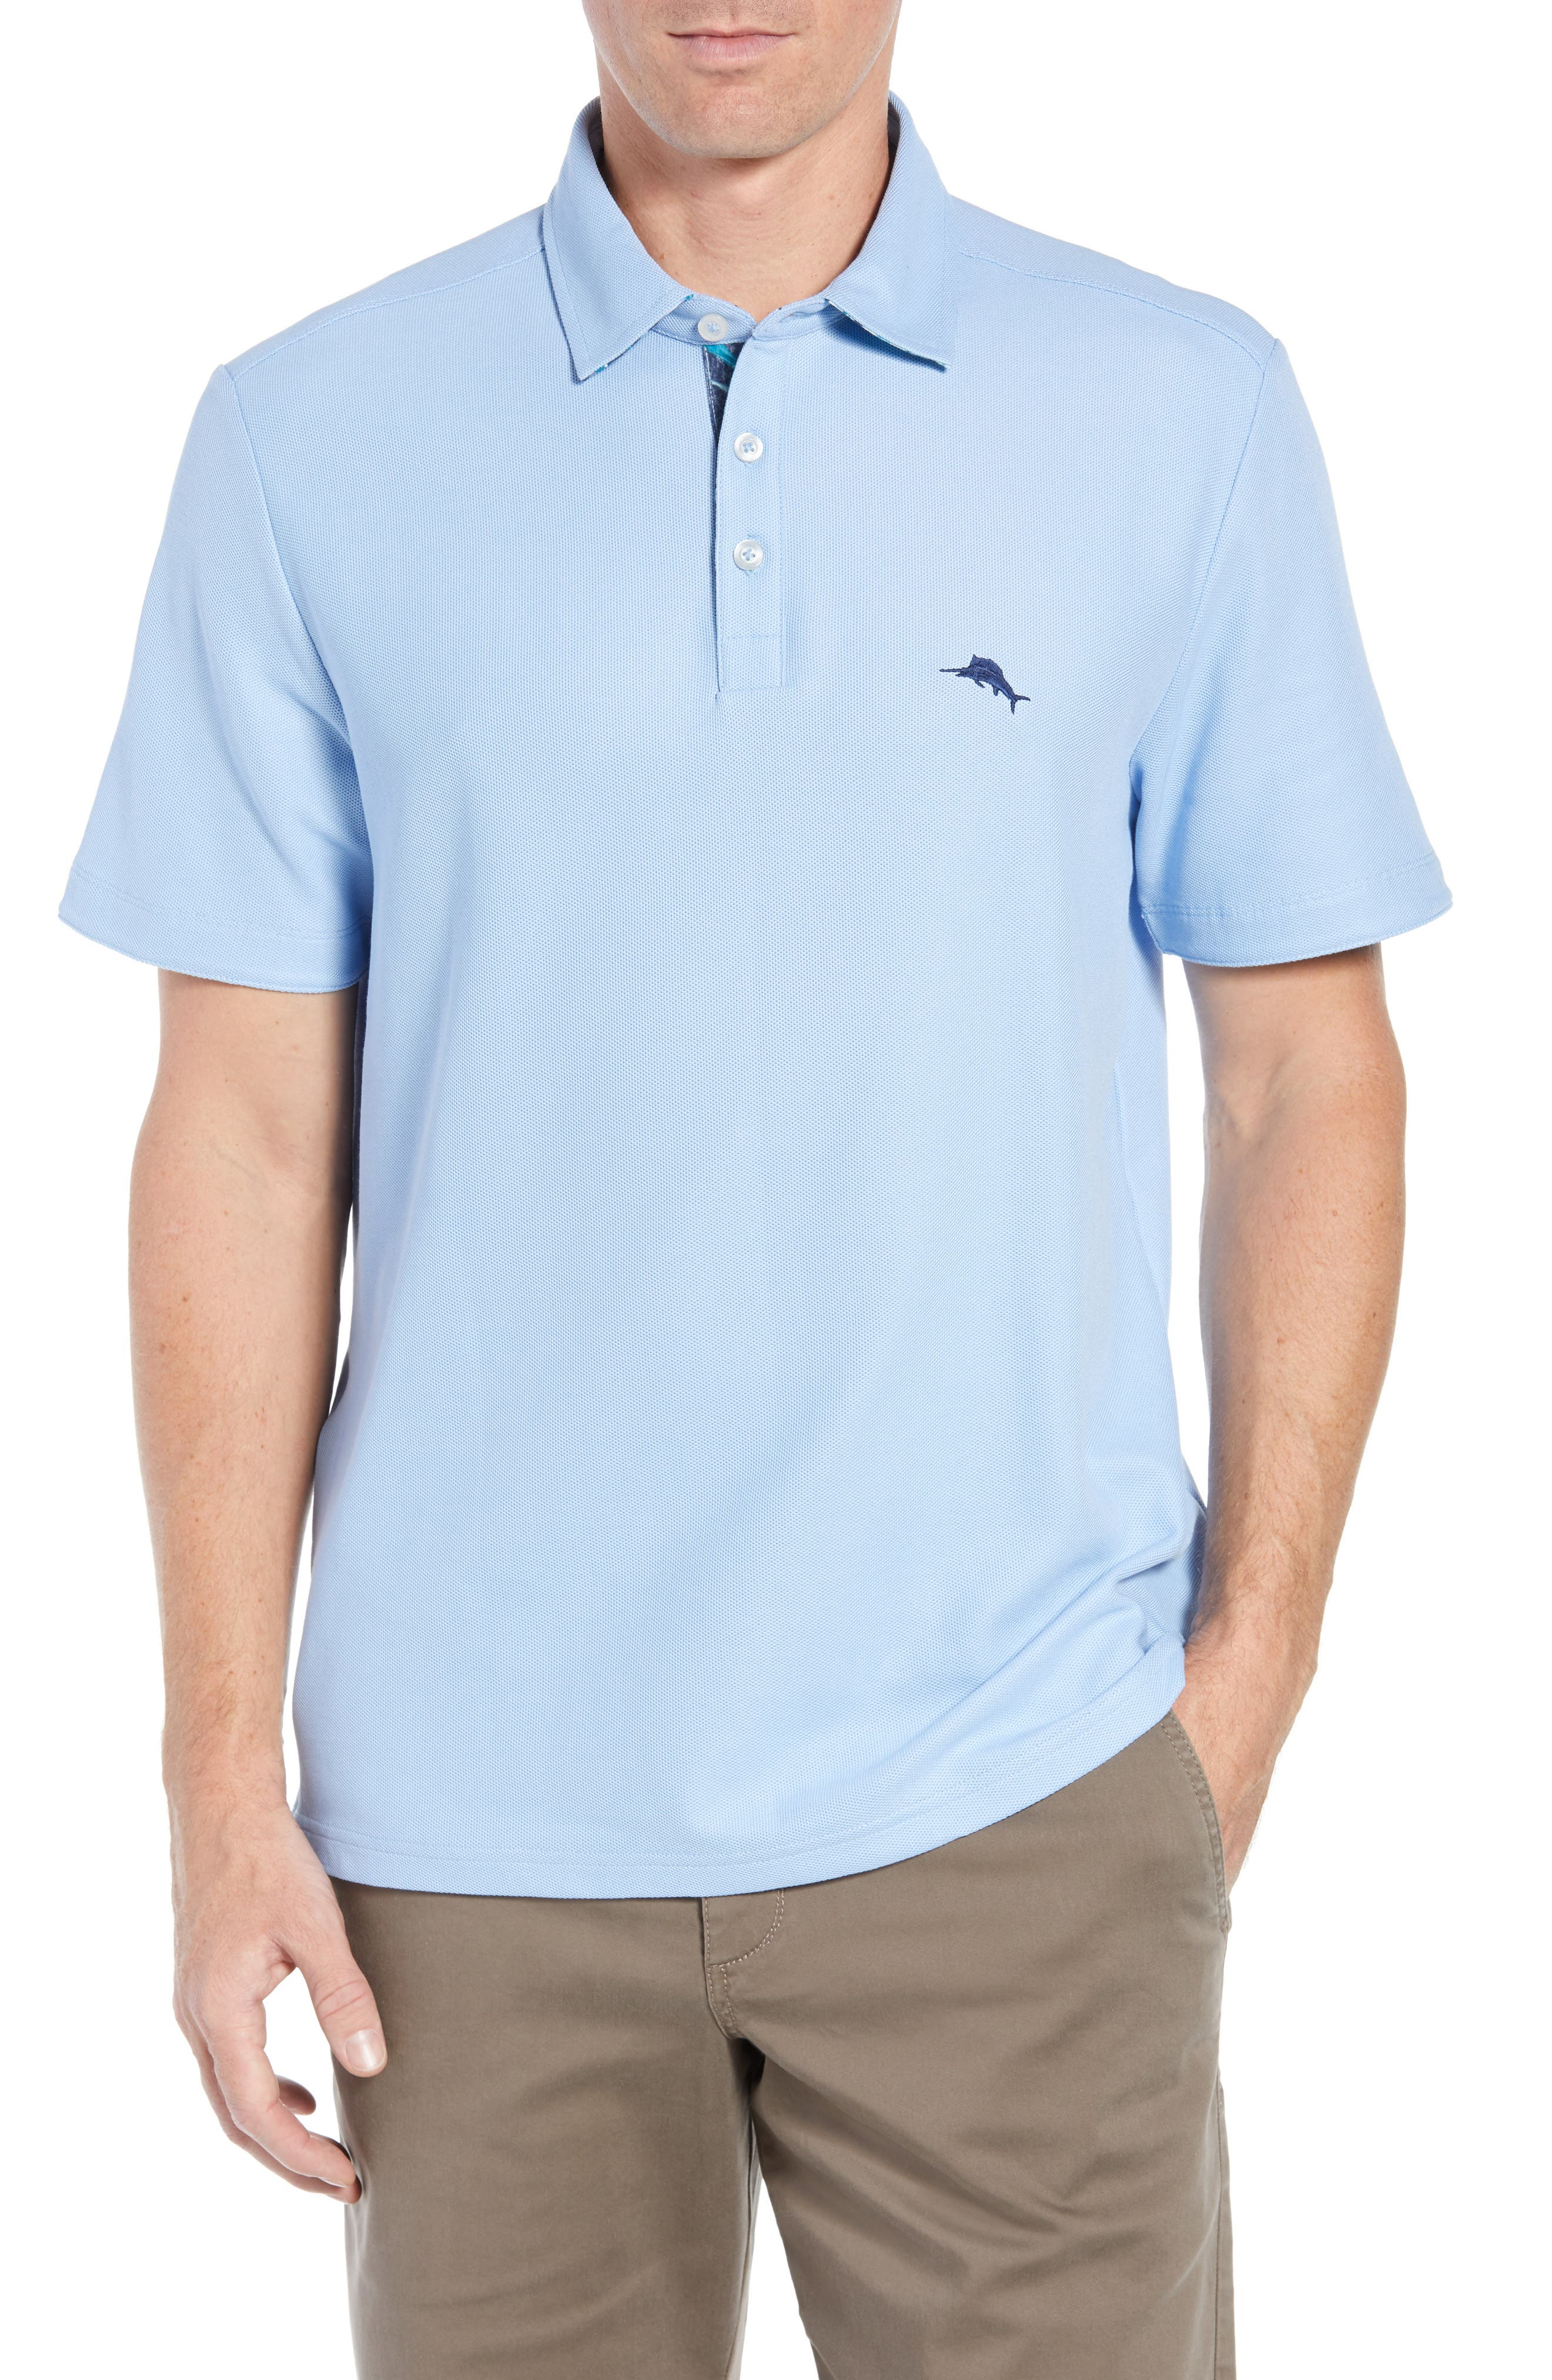 Five O'Clock Polo Shirt,                         Main,                         color, 400